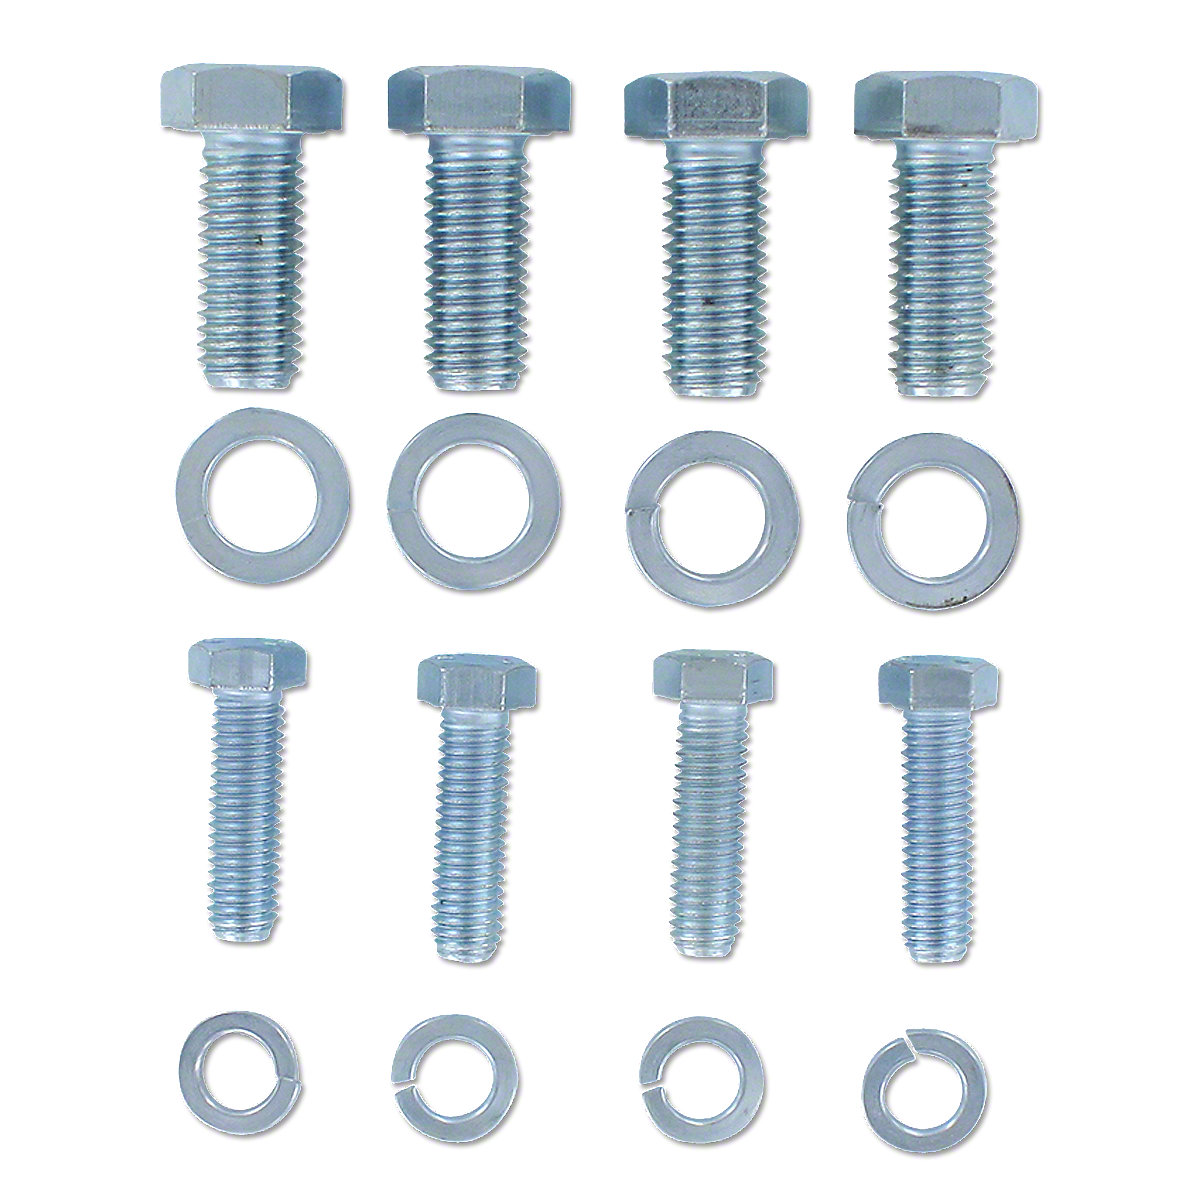 Swinging Drawbar Bolt Kit For Massey Ferguson: TE20, TE35, TEA20, TO20, TO30, TO35, 35, 40, 50, Massey Harris: 50.